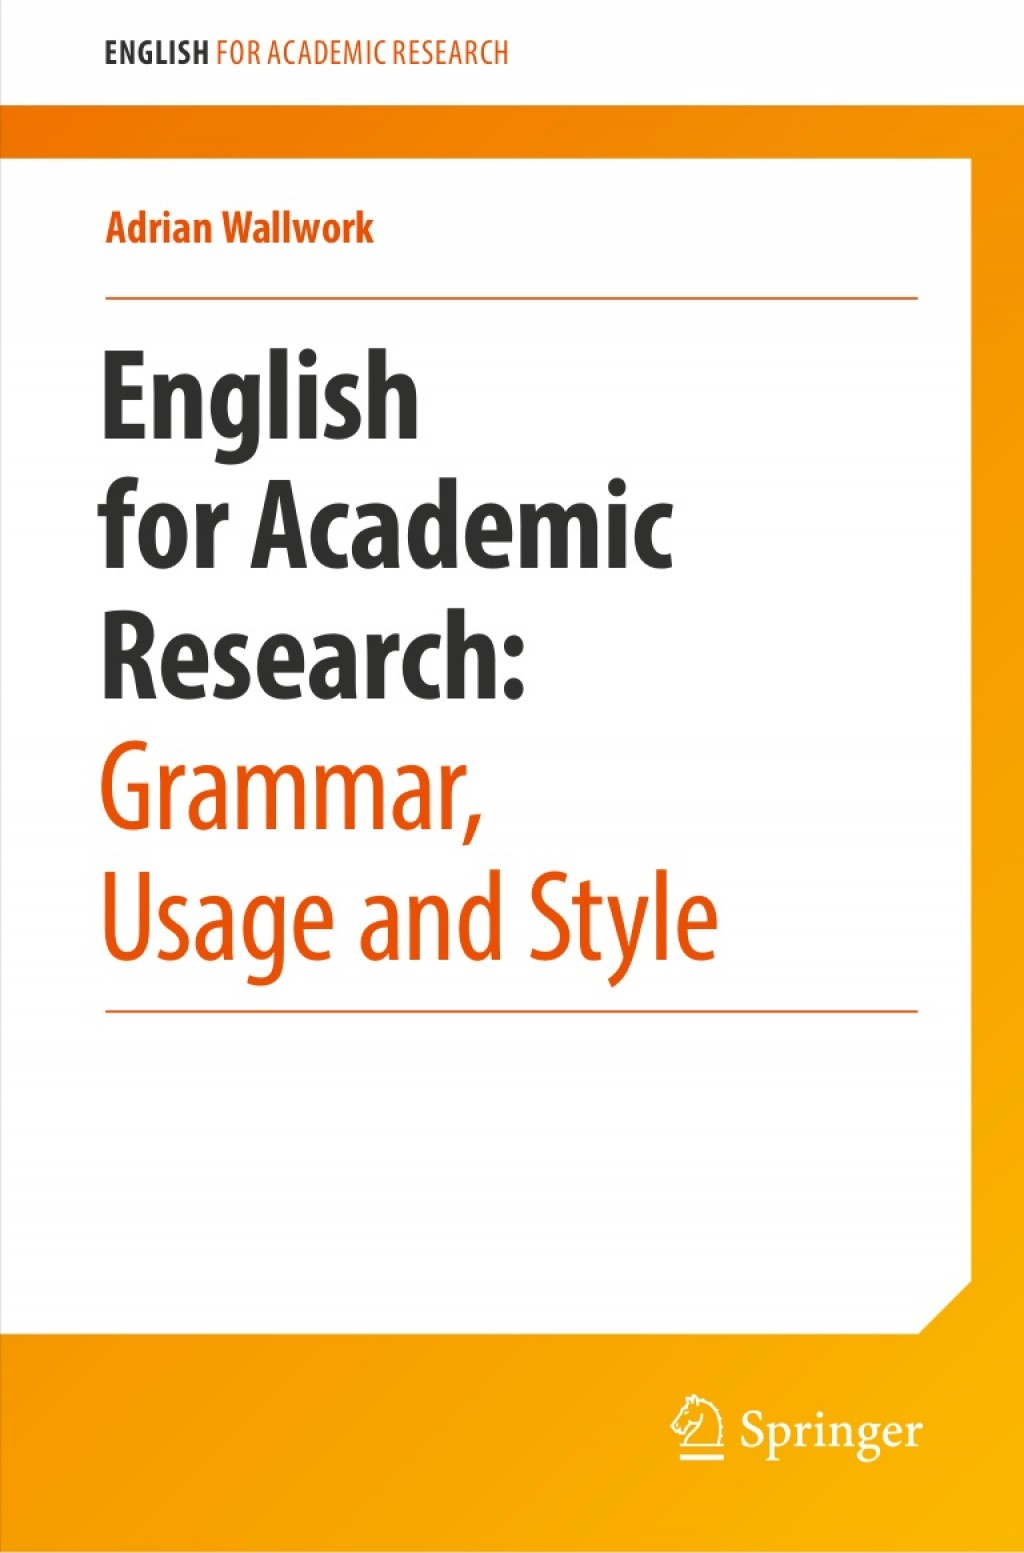 012 Englishforacademicresearchgrammarusageandstyle Thumbnail Research Paper English For Writing Papers Adrian Wallwork Marvelous Pdf 2011 Large